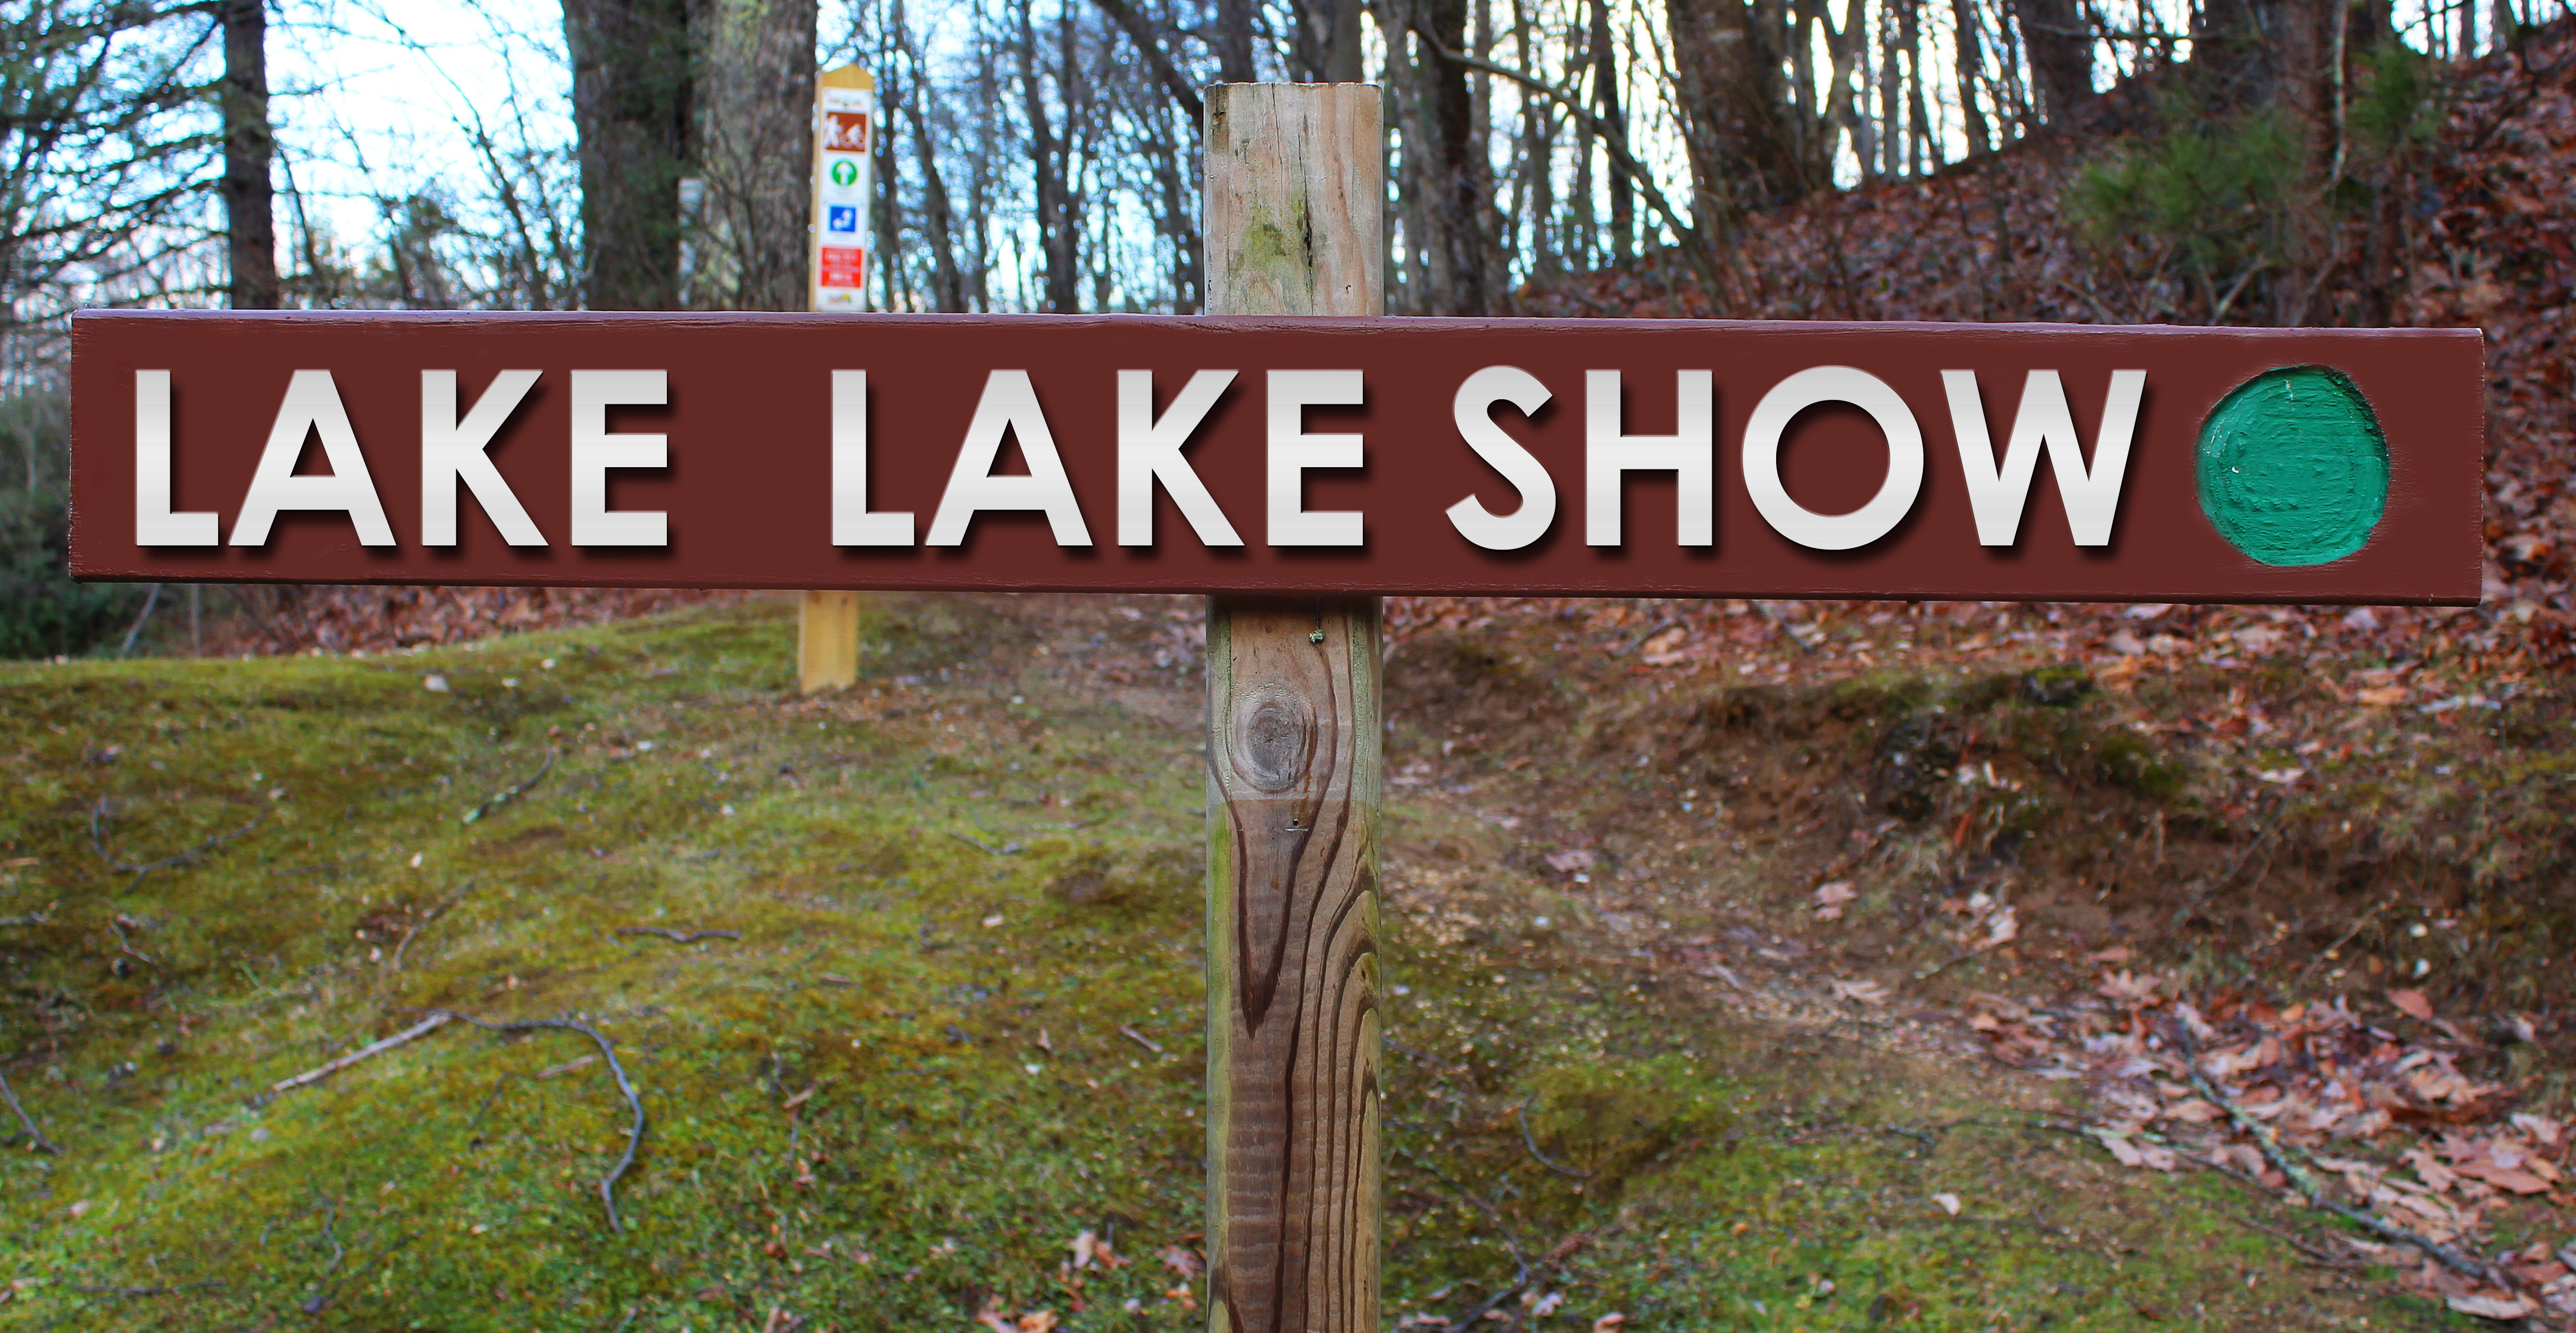 Picture of Lake Lake Show trail sign